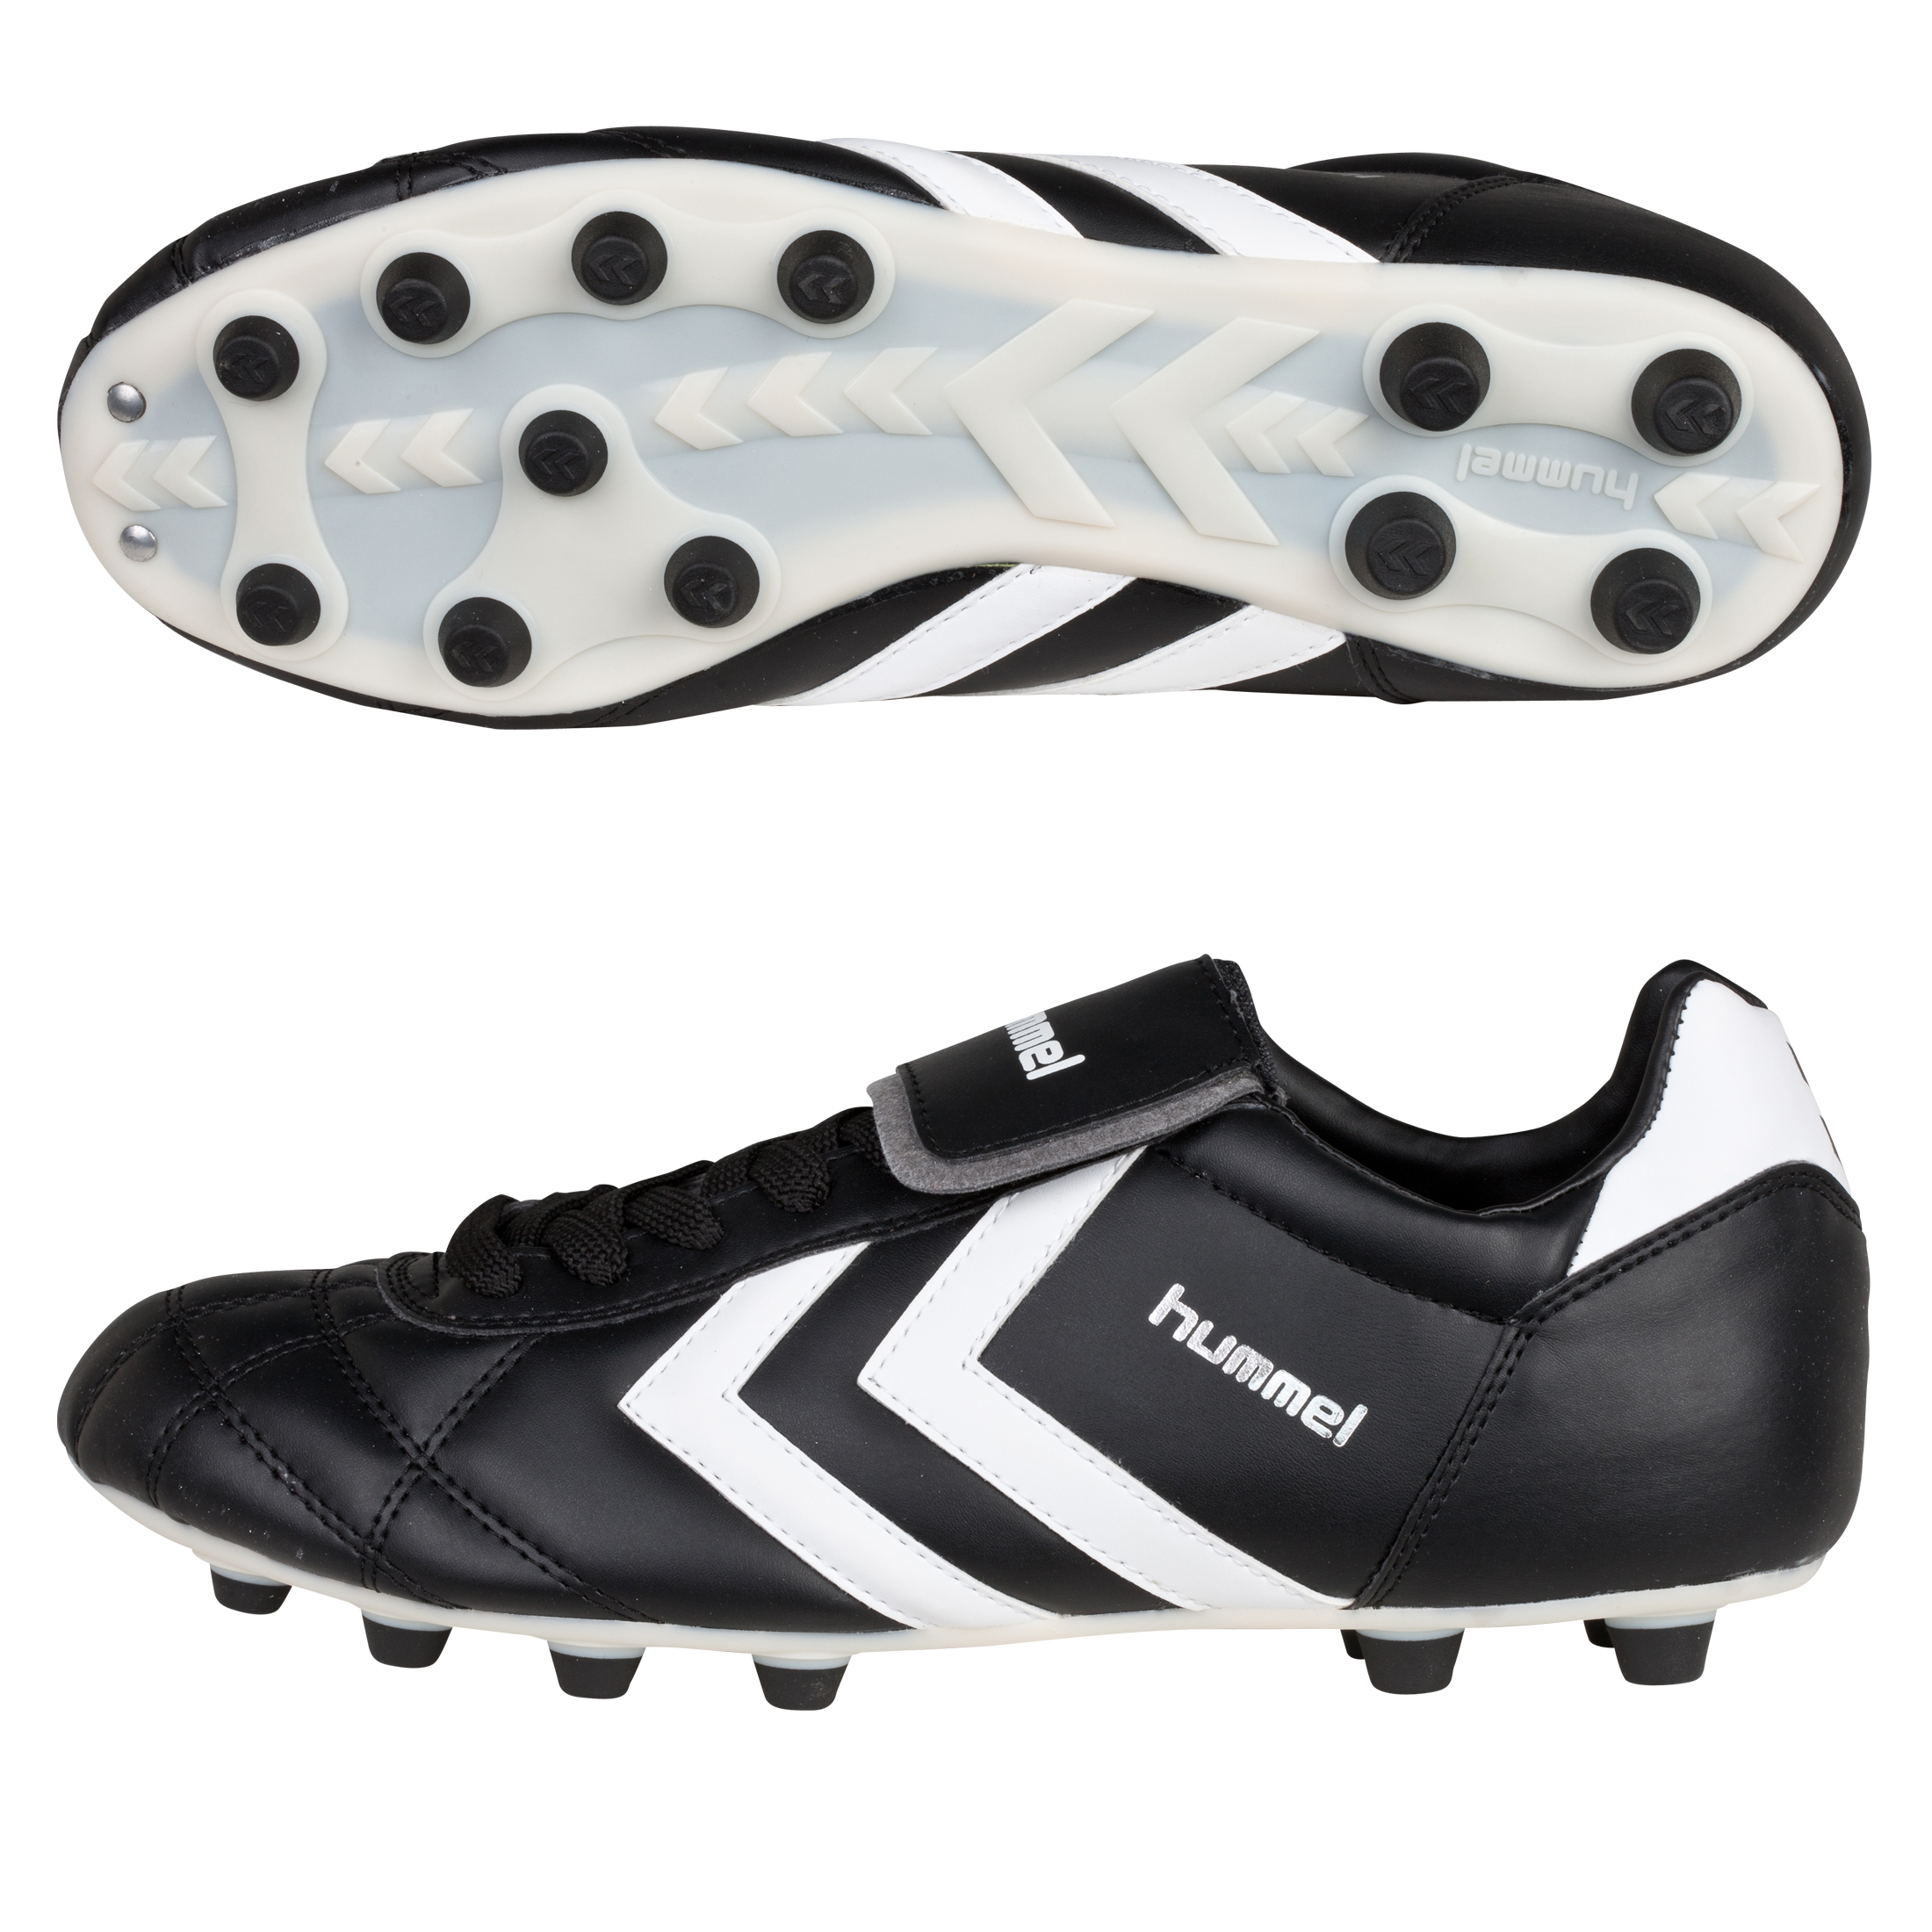 Hummel Old School Star Synthetic Firm Ground Football Boots - Black/White